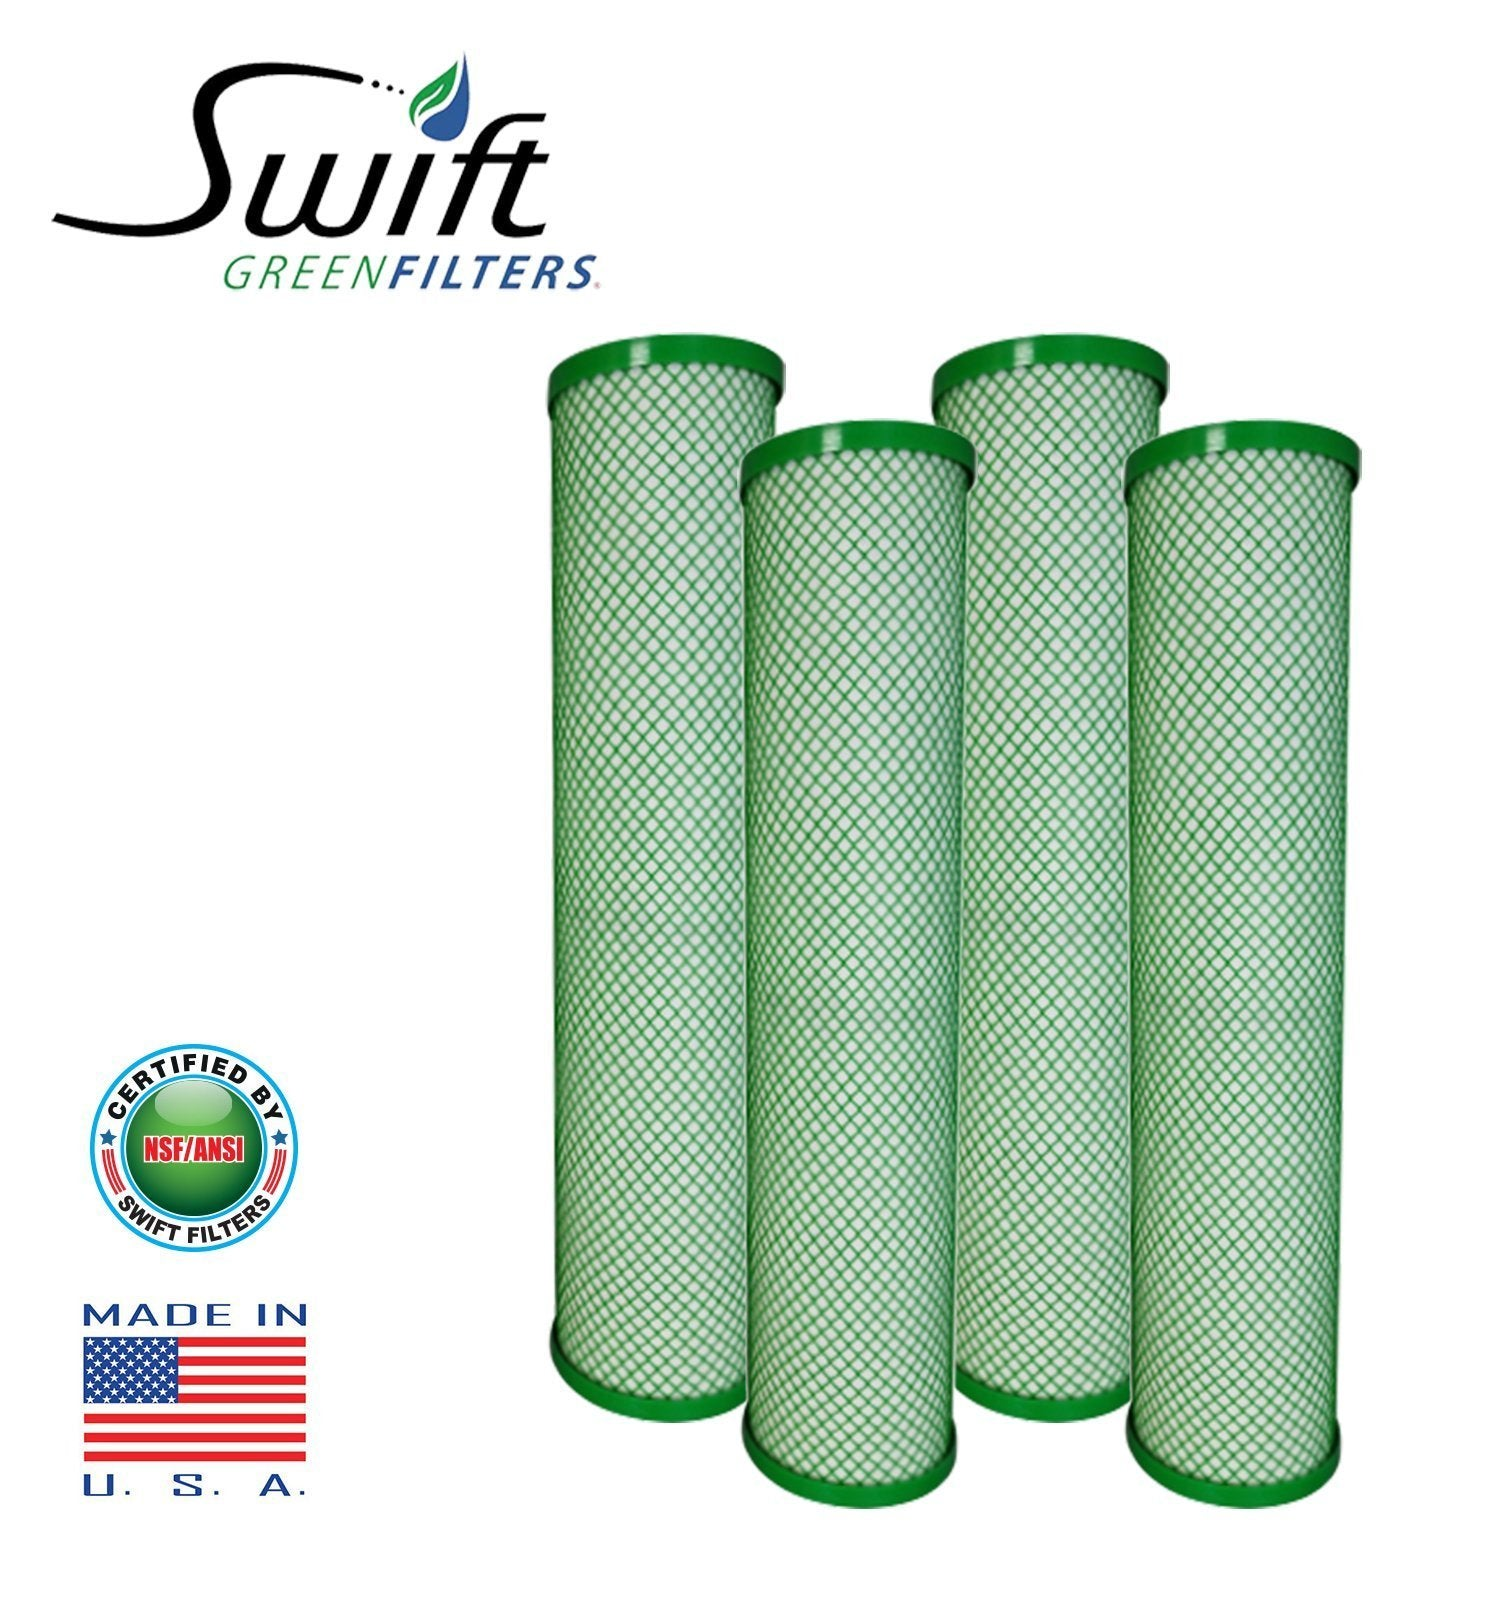 "Swift (SGFB20Pb1) Replaces Filtrex FXB20PB1 20""x 4.5"" LEAD/CYST Green Block Carbon 1 Micron Filter - The Filters Club"